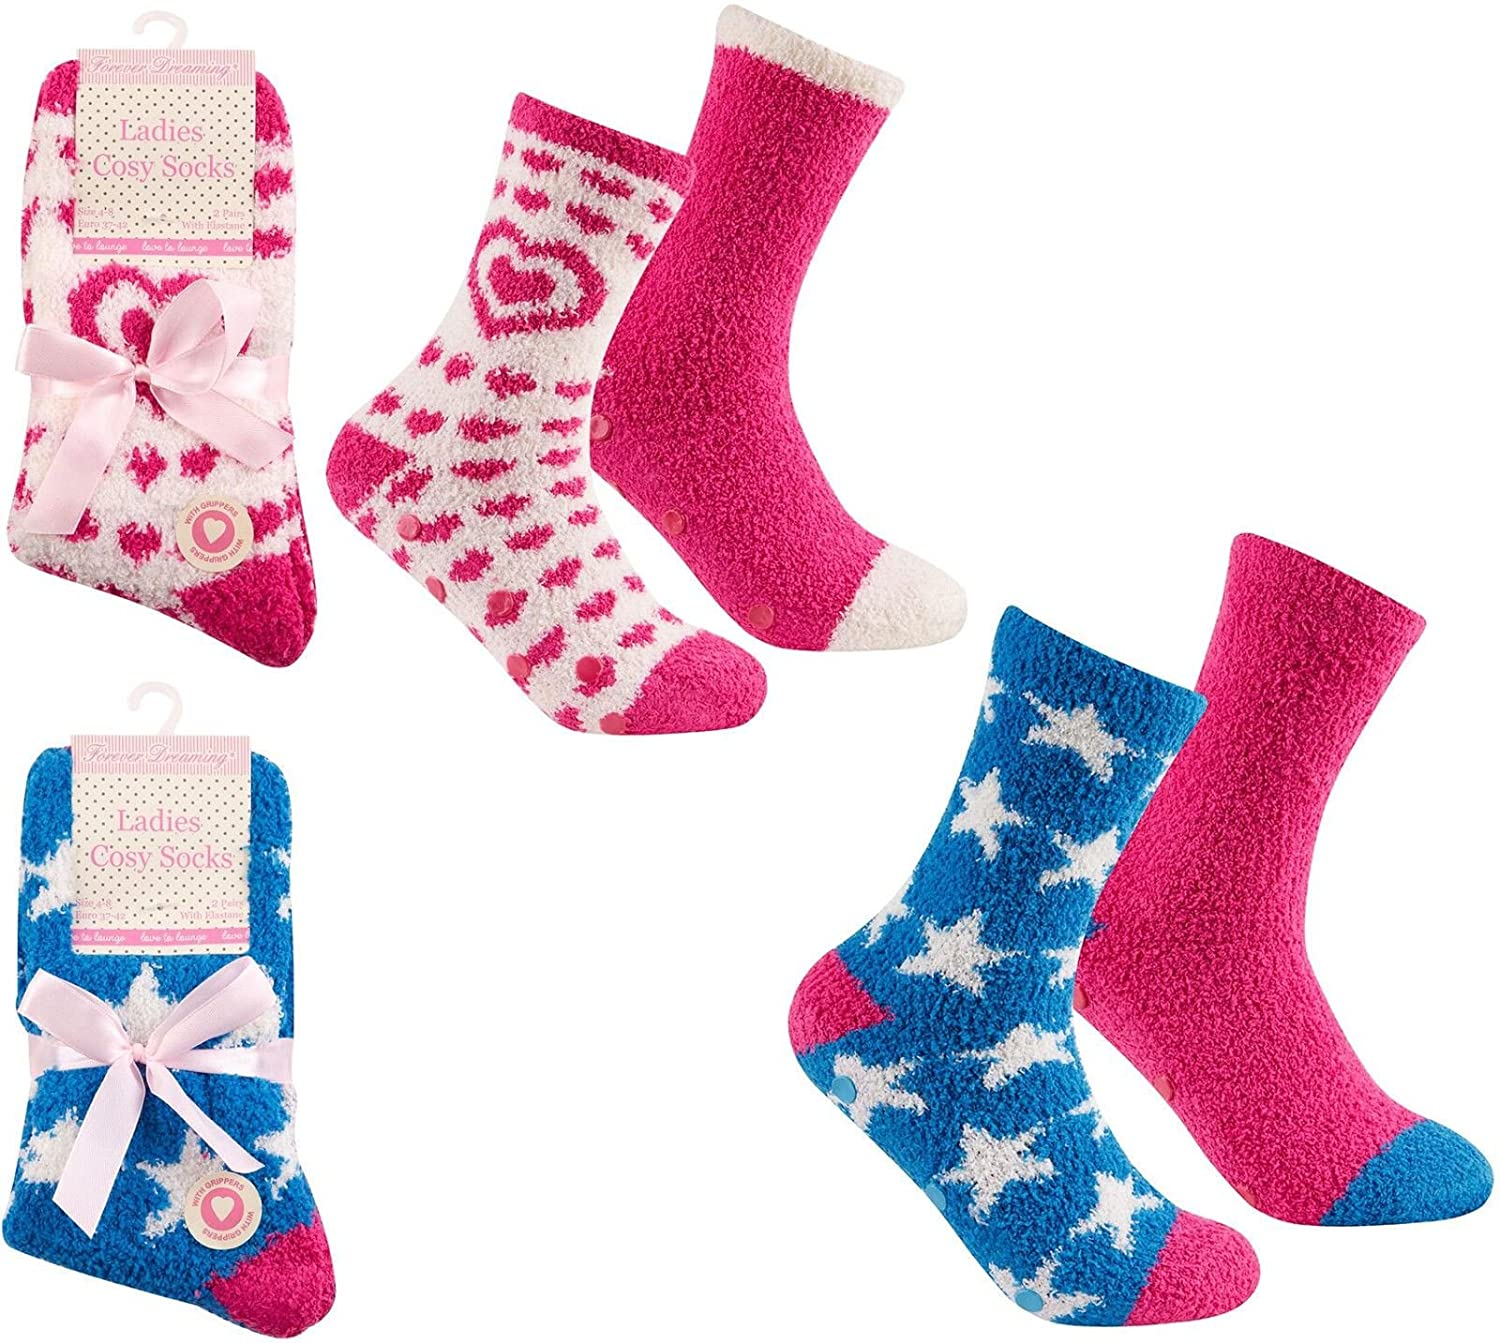 4 Pair Ladies Cosy Soft Fleece Lounge Bed Socks With or Without Rubber Grips - Mixed Colours From Undercover